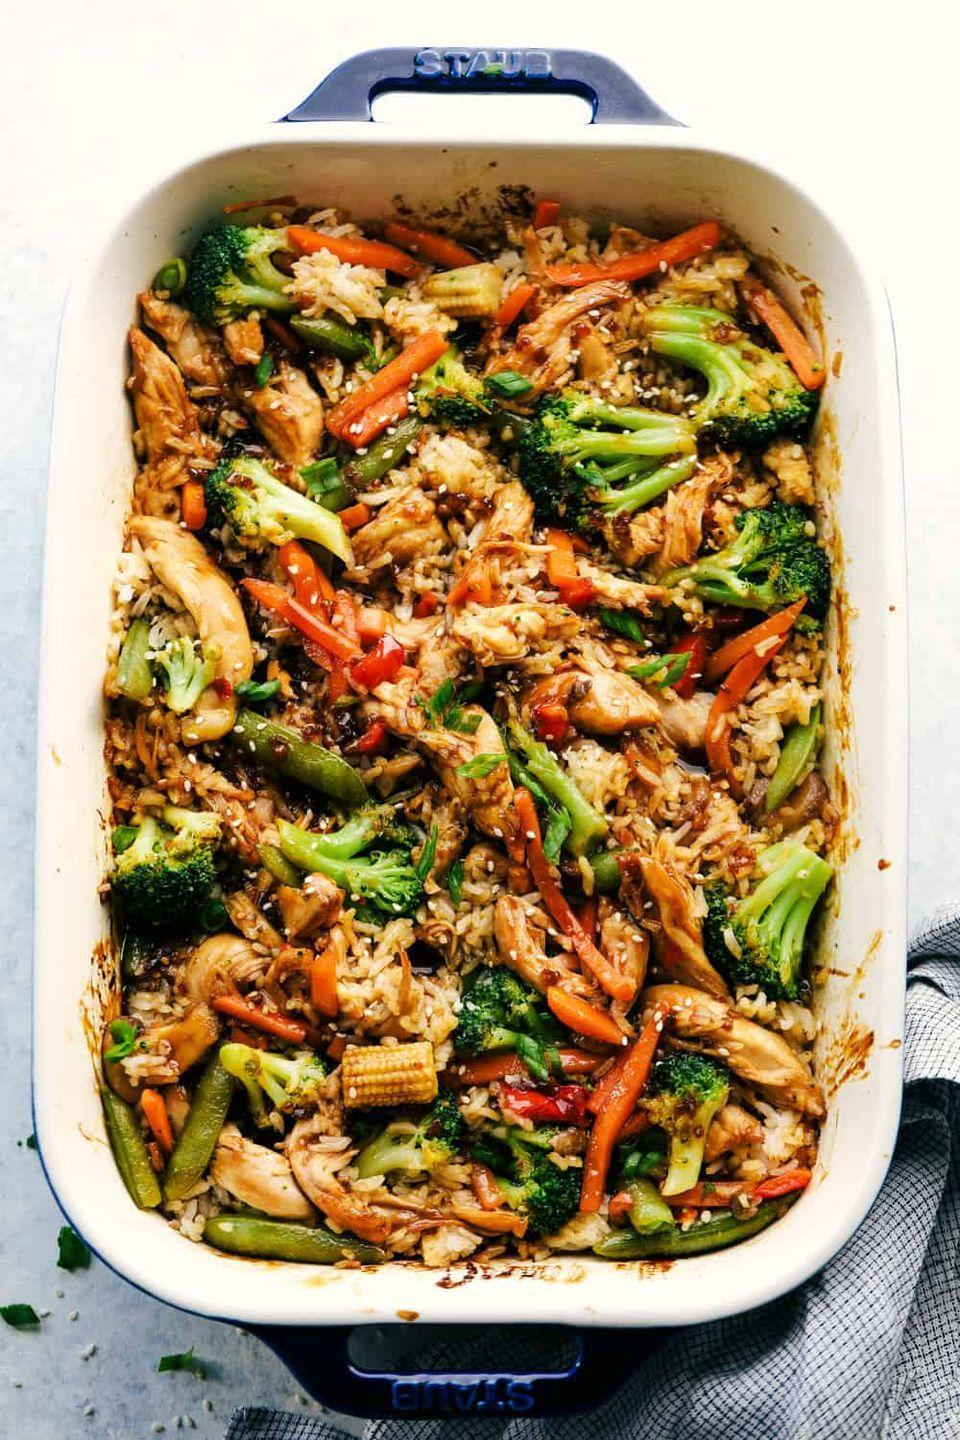 """<p>Cook up your favorite teriyaki chicken stir-fry right in one pan to save yourself a mess.</p><p><strong>Get the recipe at <a href=""""https://therecipecritic.com/teriyaki-chicken-casserole/"""" rel=""""nofollow noopener"""" target=""""_blank"""" data-ylk=""""slk:The Recipe Critic"""" class=""""link rapid-noclick-resp"""">The Recipe Critic</a>.</strong> </p>"""